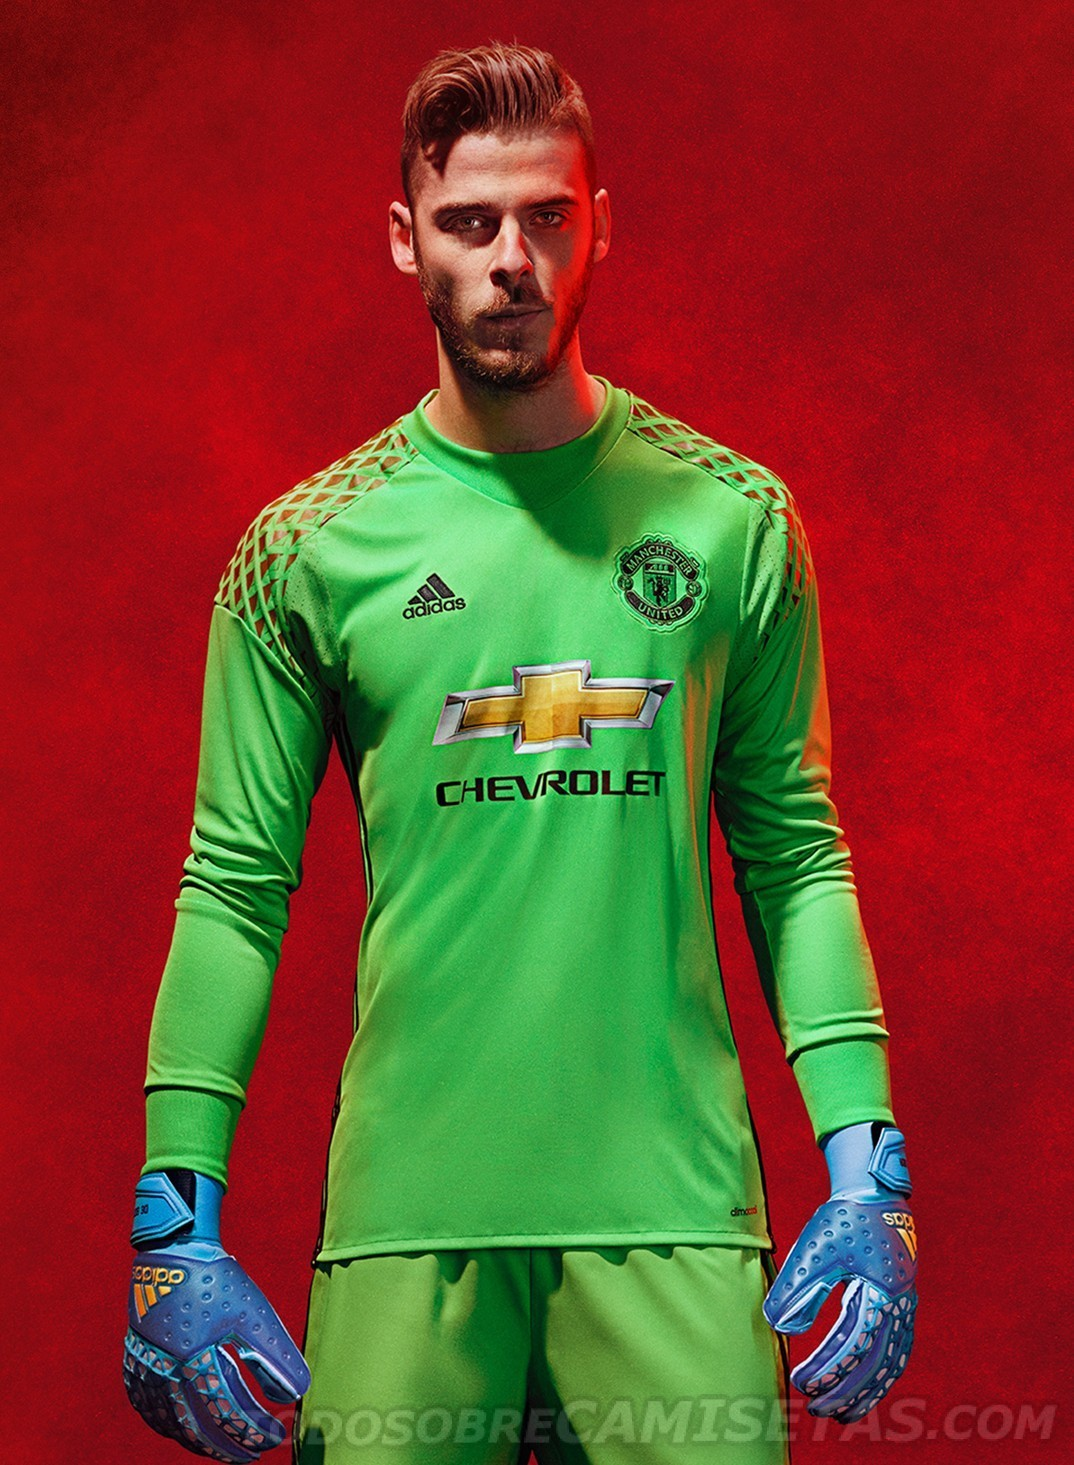 Manchester-United-2016-17-adidas-new-GK-kit-3.jpg